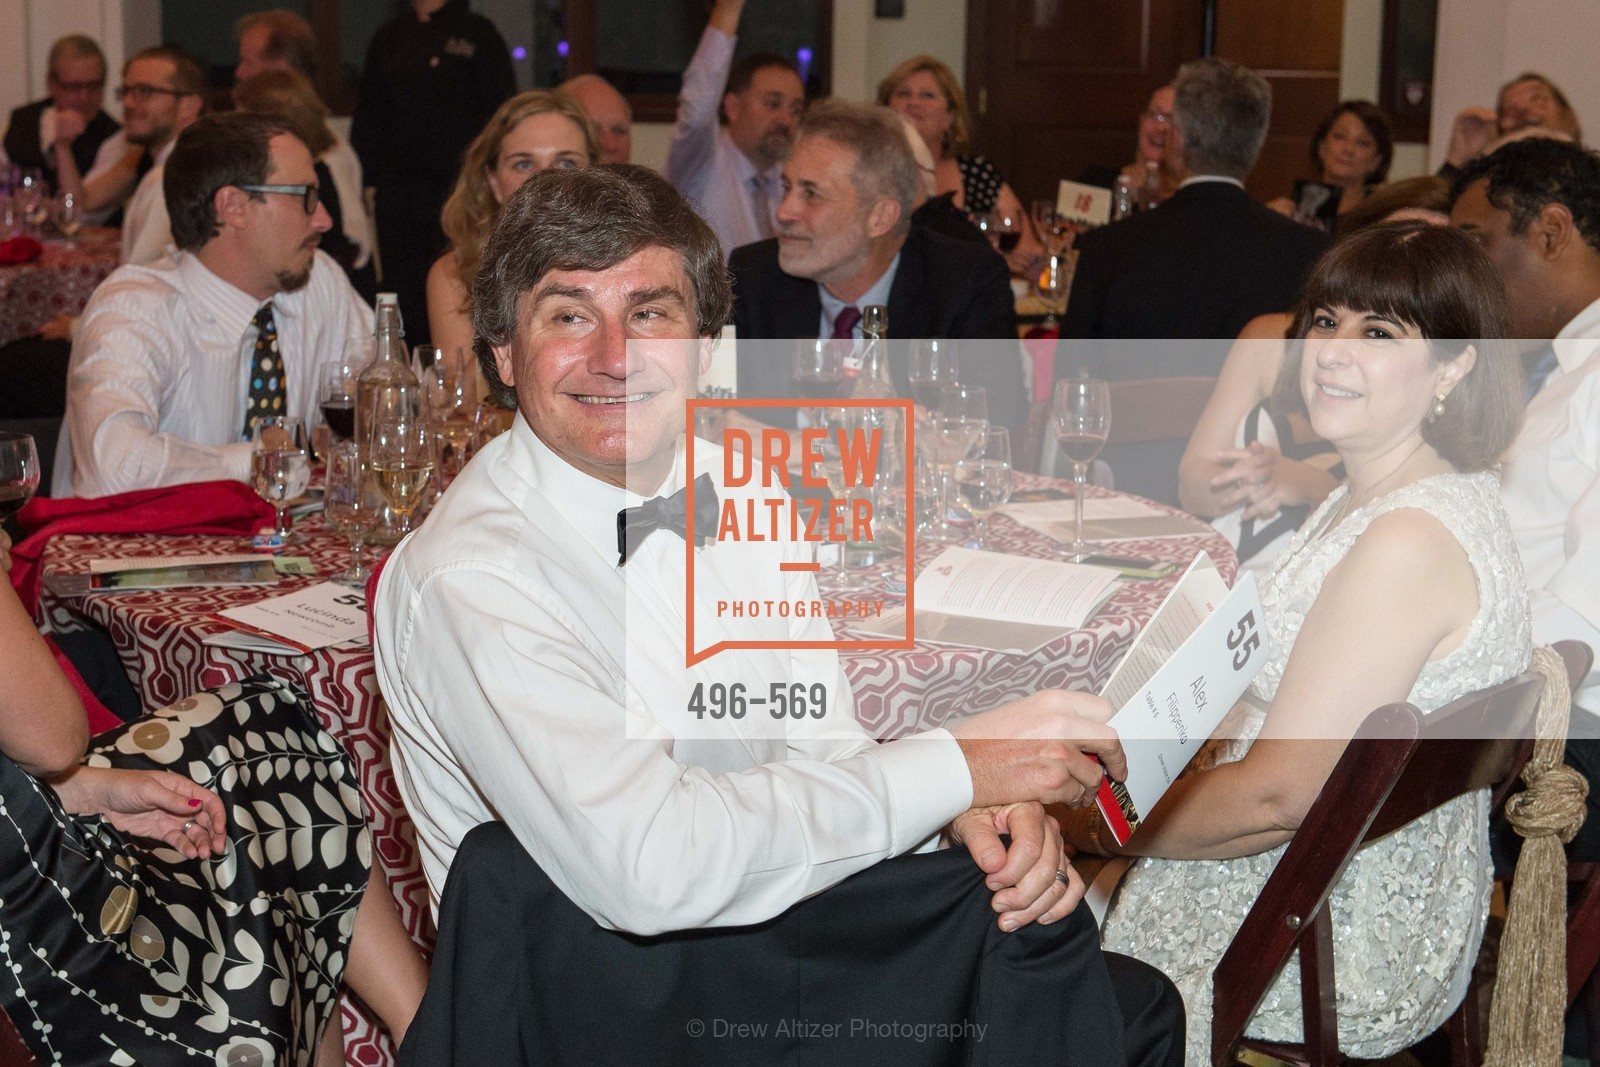 Alex Filippenko, CHABOT Science Center STARLIGHT GALA, US, September 20th, 2014,Drew Altizer, Drew Altizer Photography, full-service event agency, private events, San Francisco photographer, photographer California